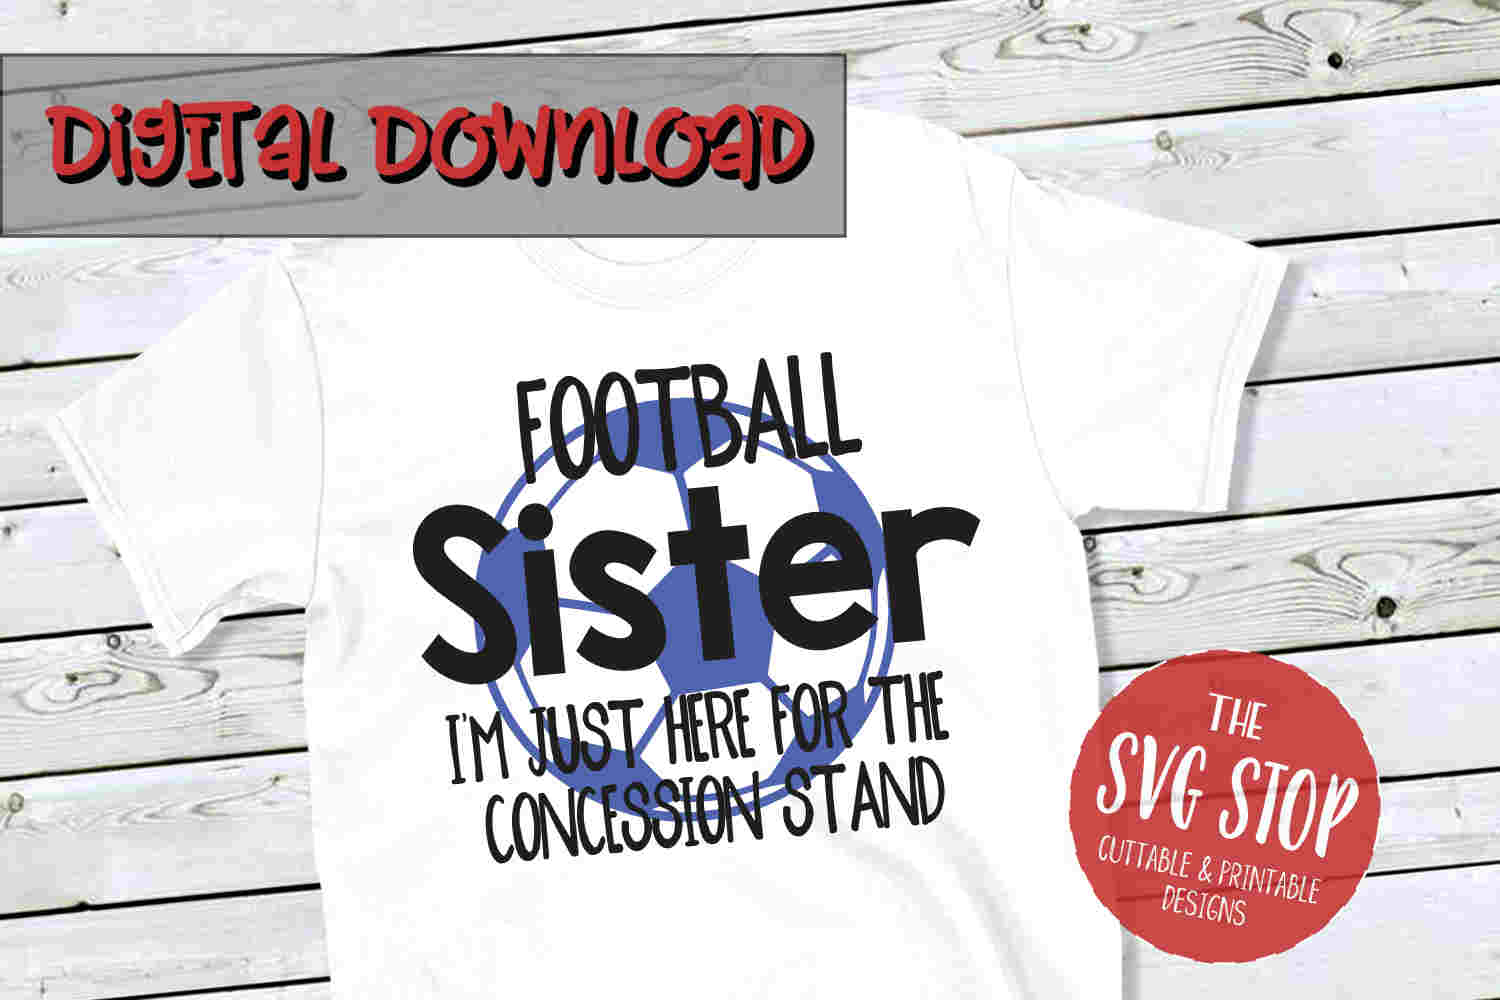 Football-Soccer Sister -SVG, PNG, DXF example image 1